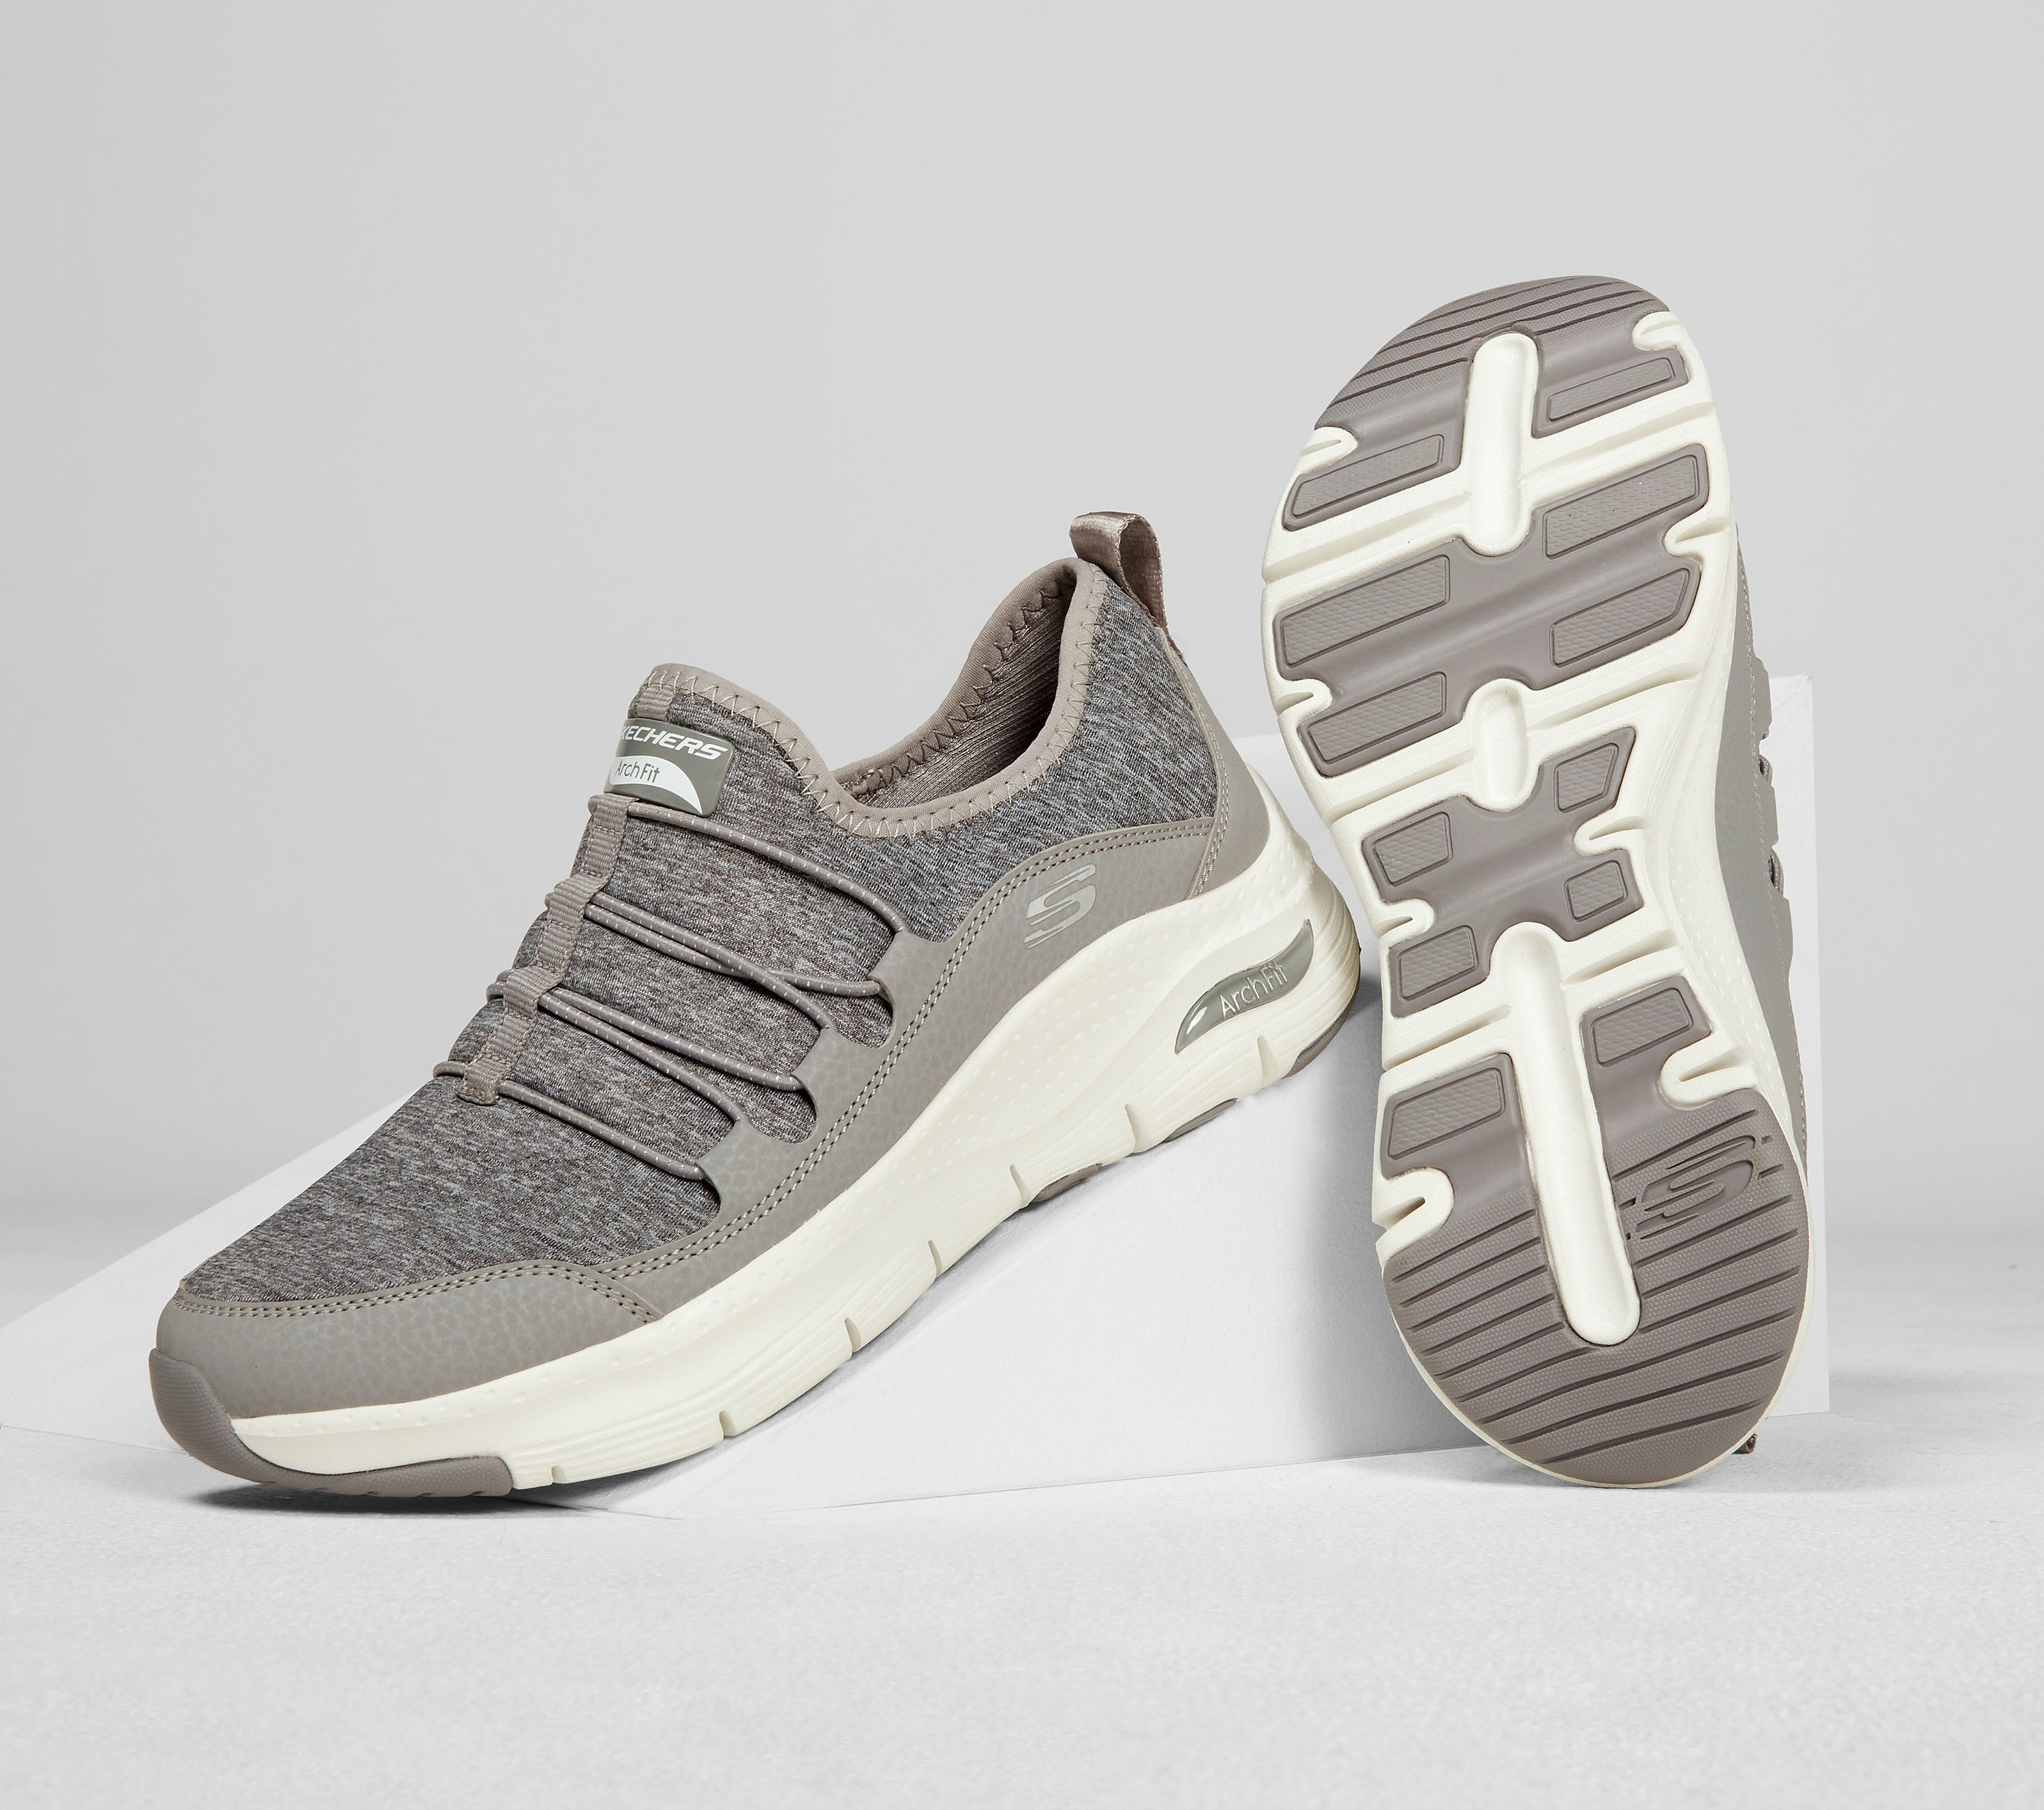 skechers special shoes